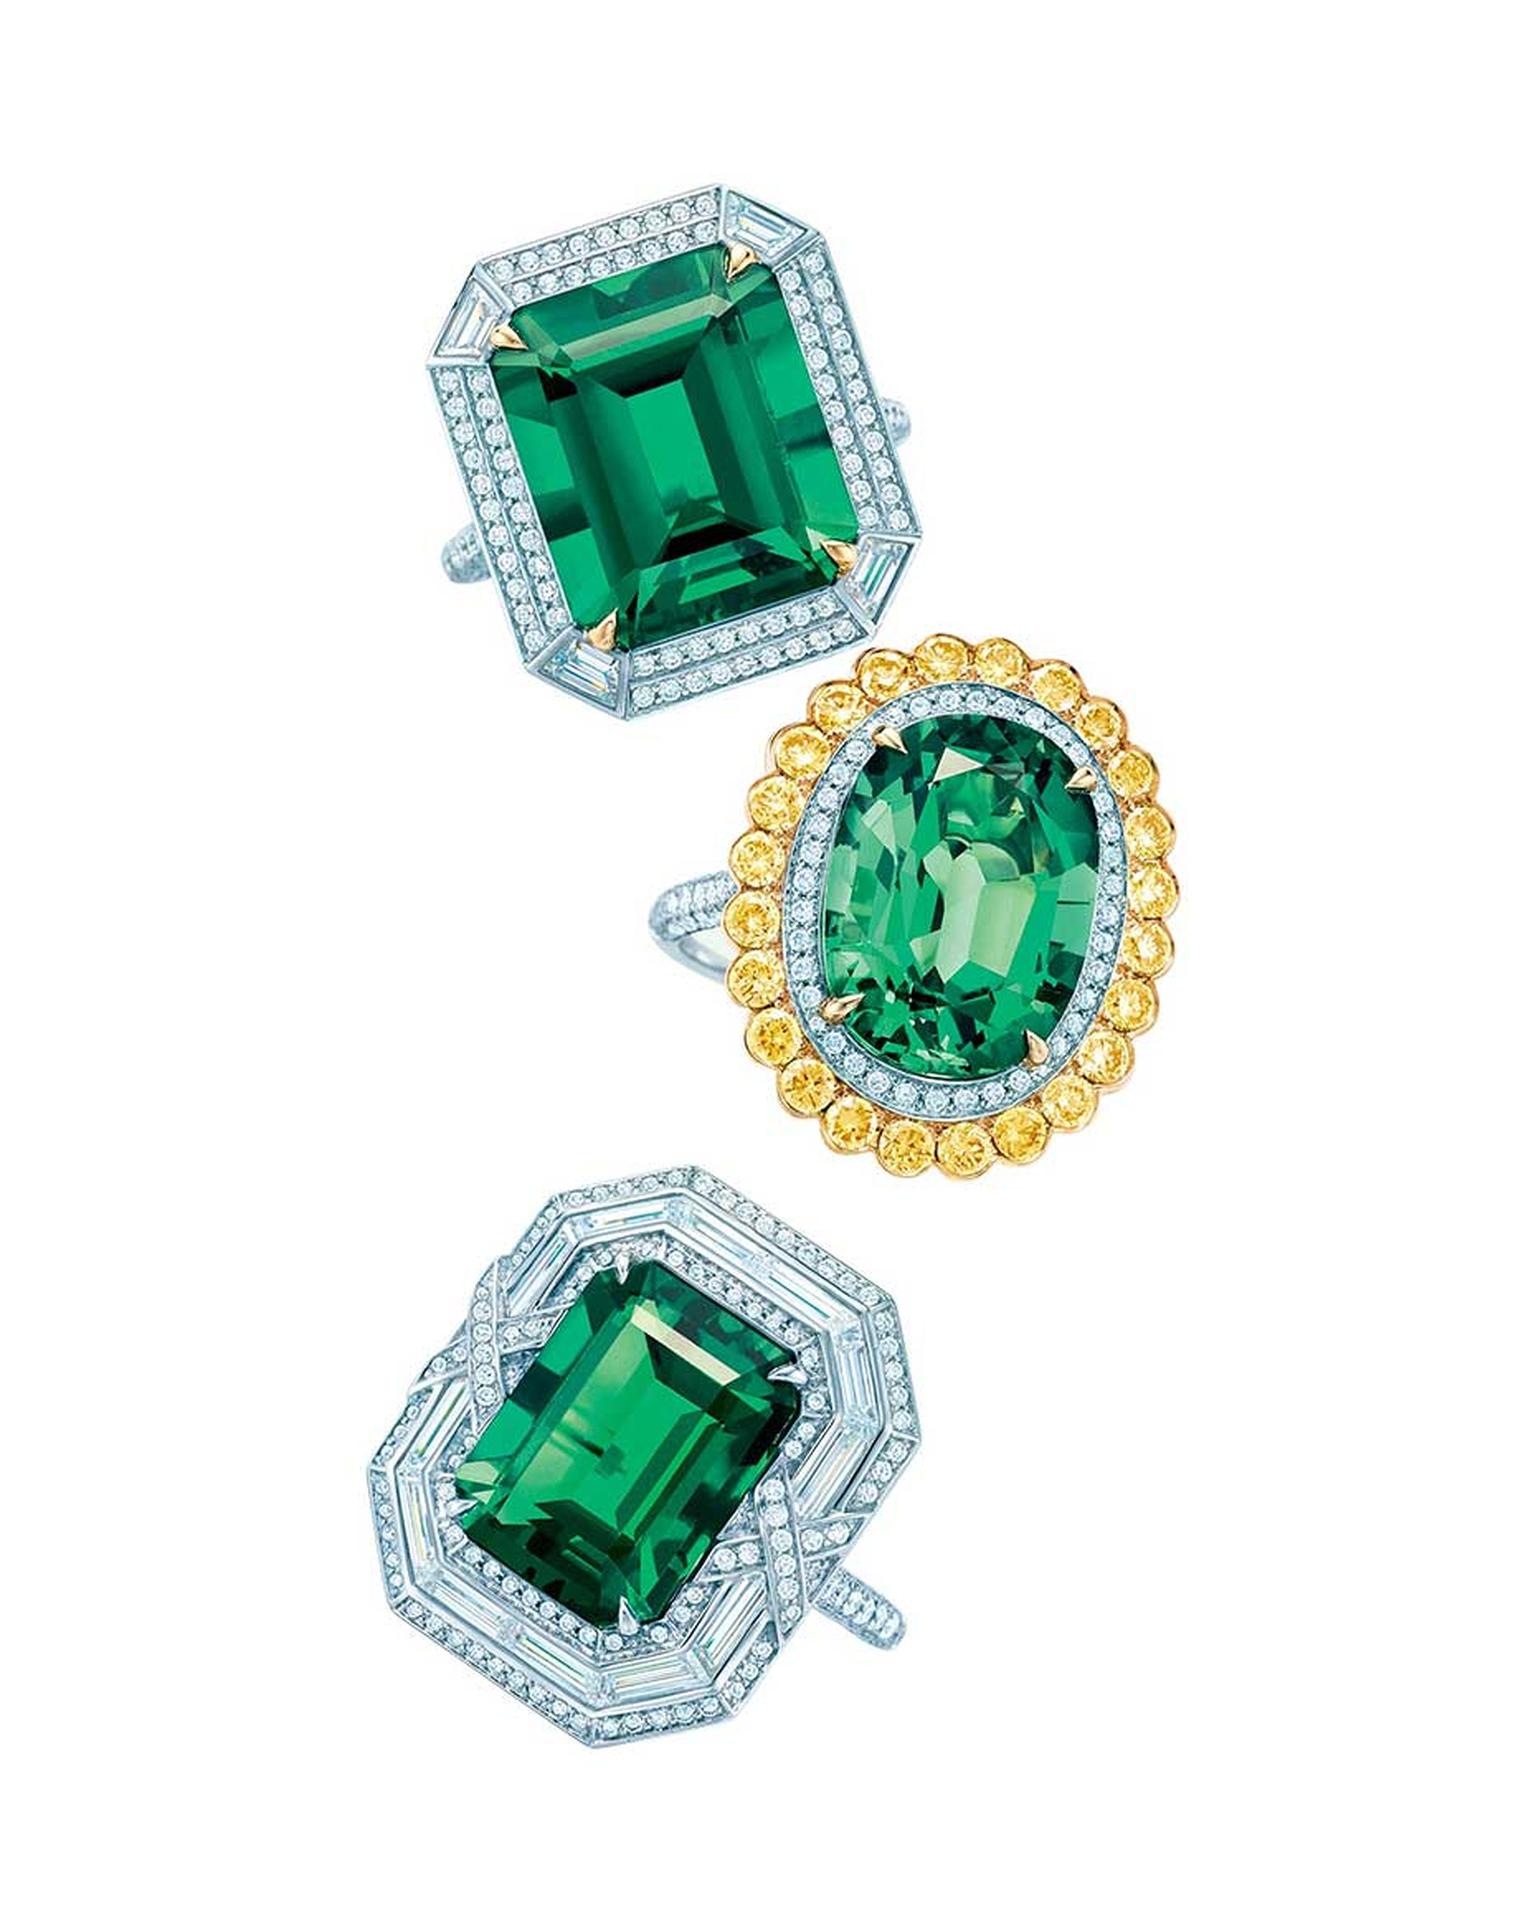 Top to bottom, Tiffany & Co. Blue Book Collection emerald ring with diamonds set in platinum and gold; emerald ring with white and yellow diamonds set in platinum and gold; and emerald ring with diamonds set in platinum.